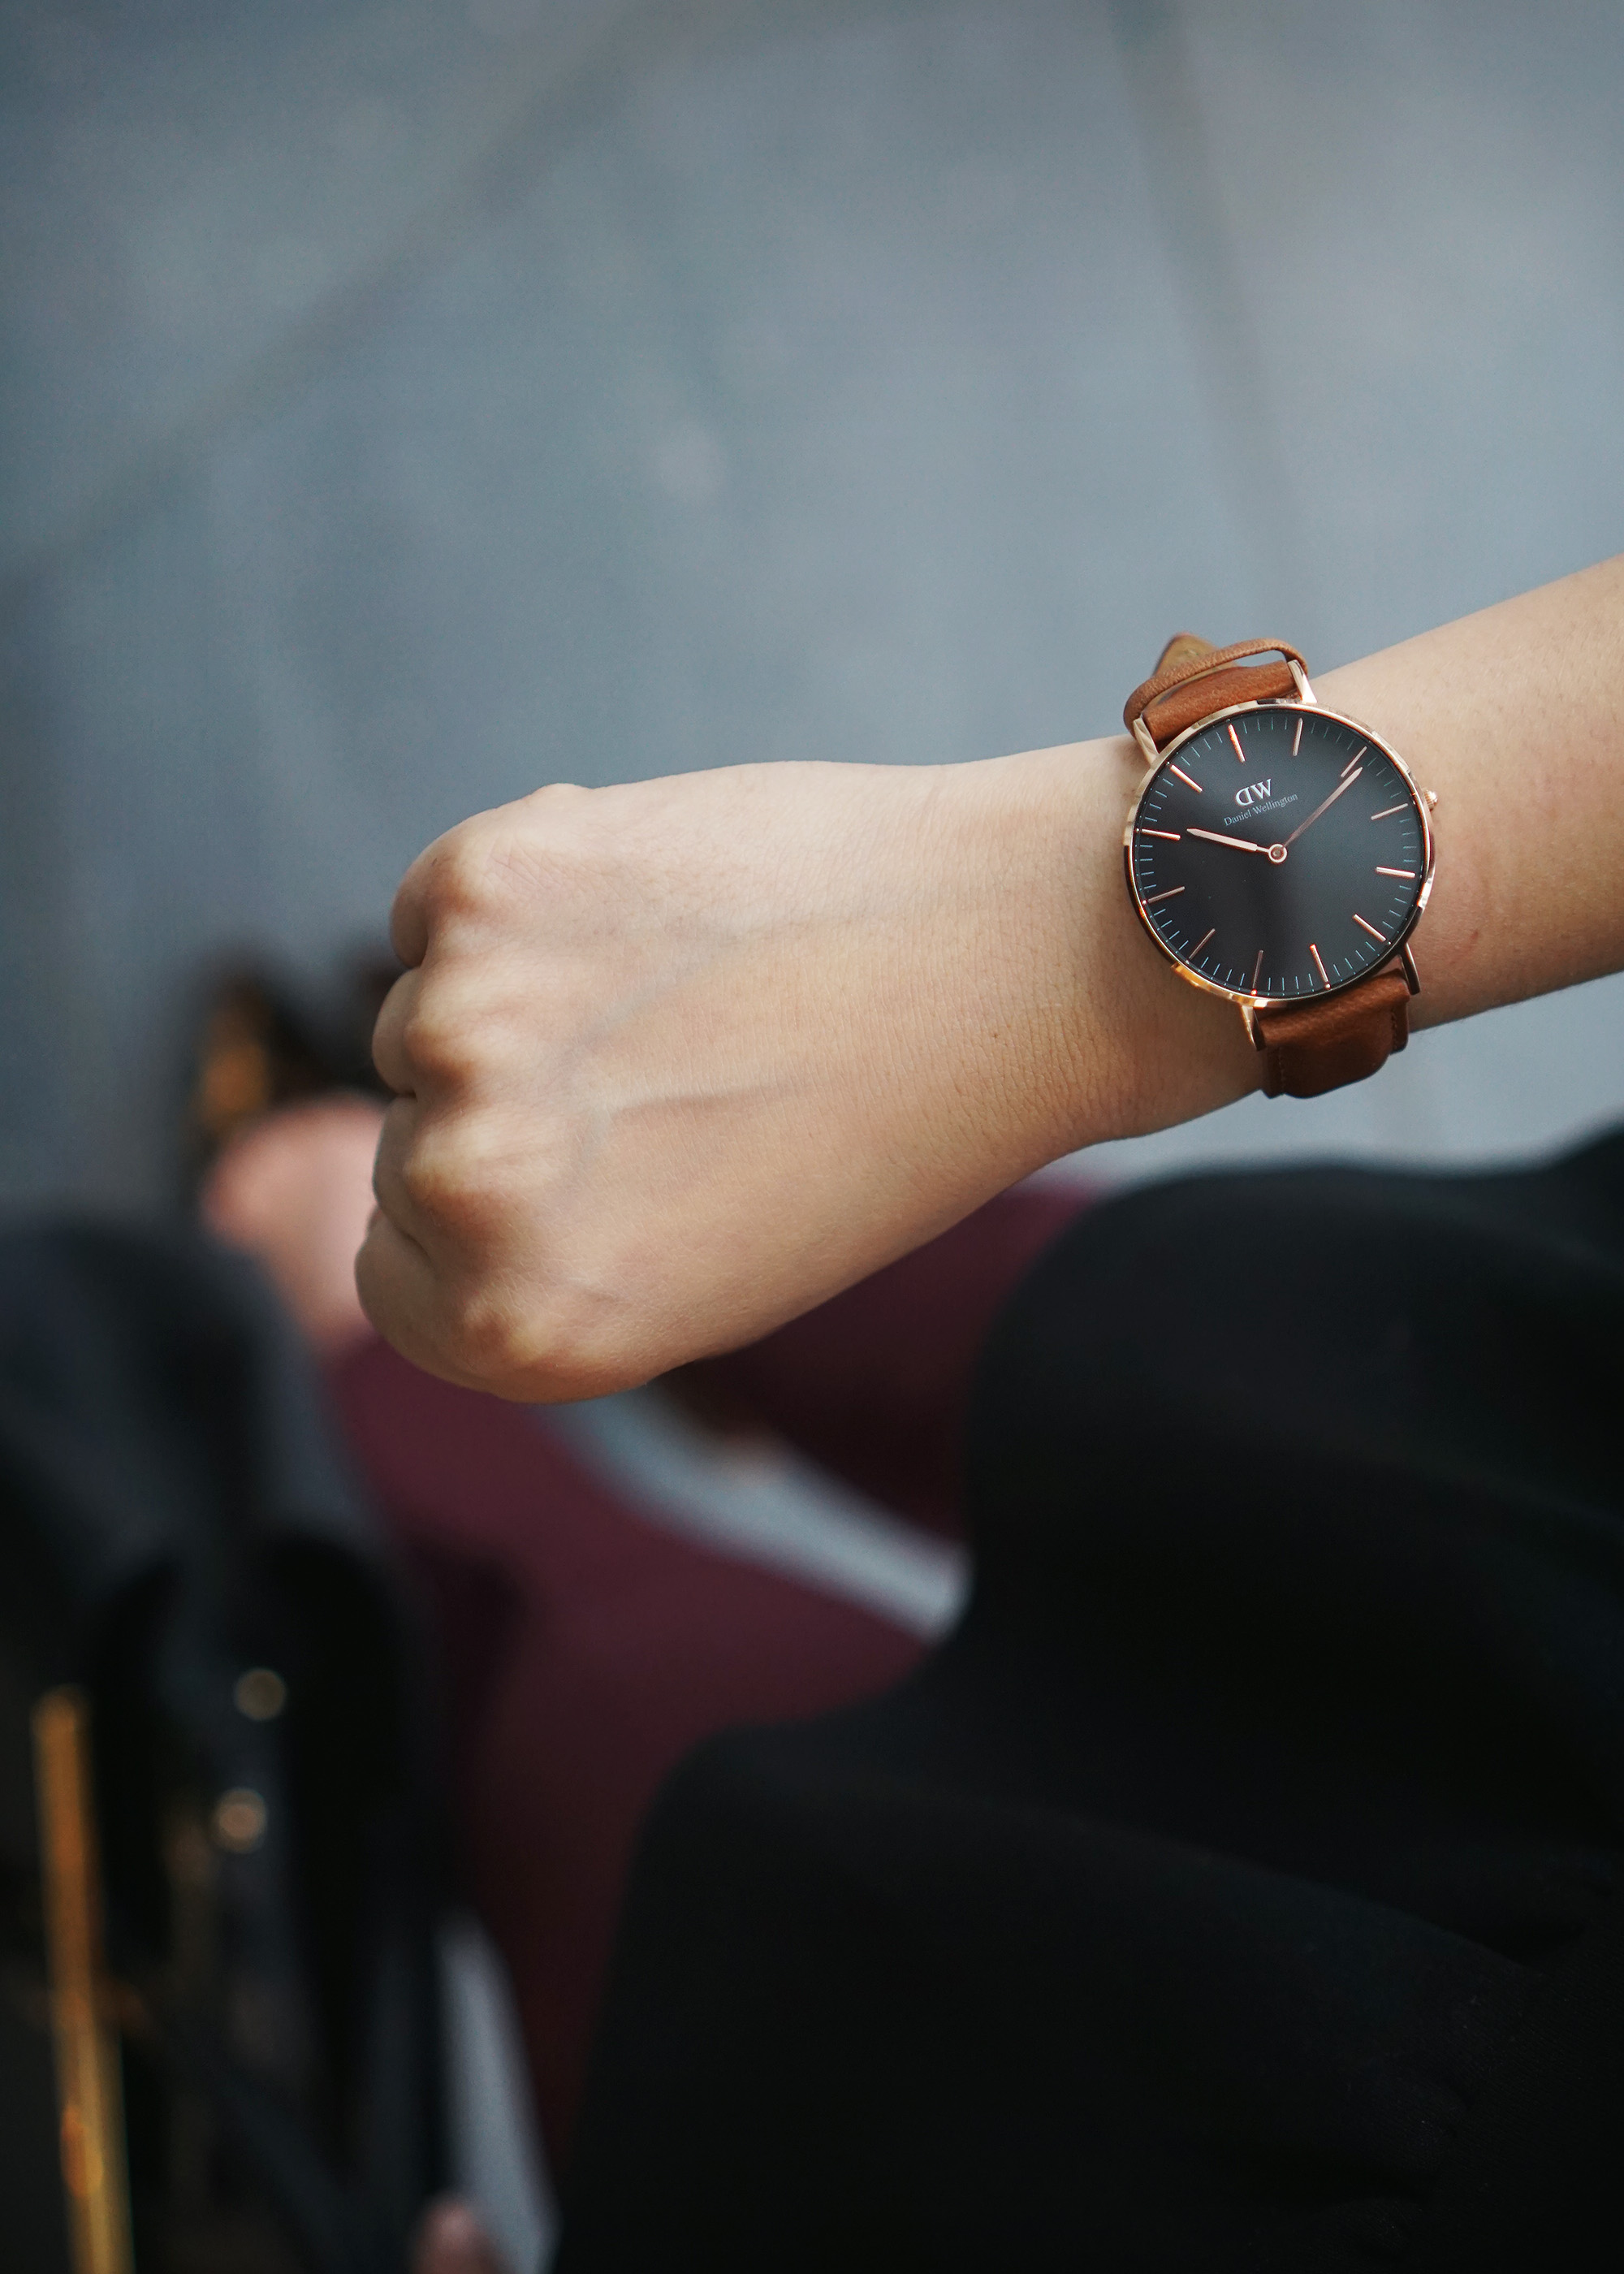 Skirt The Rules / The Best Watch for Work